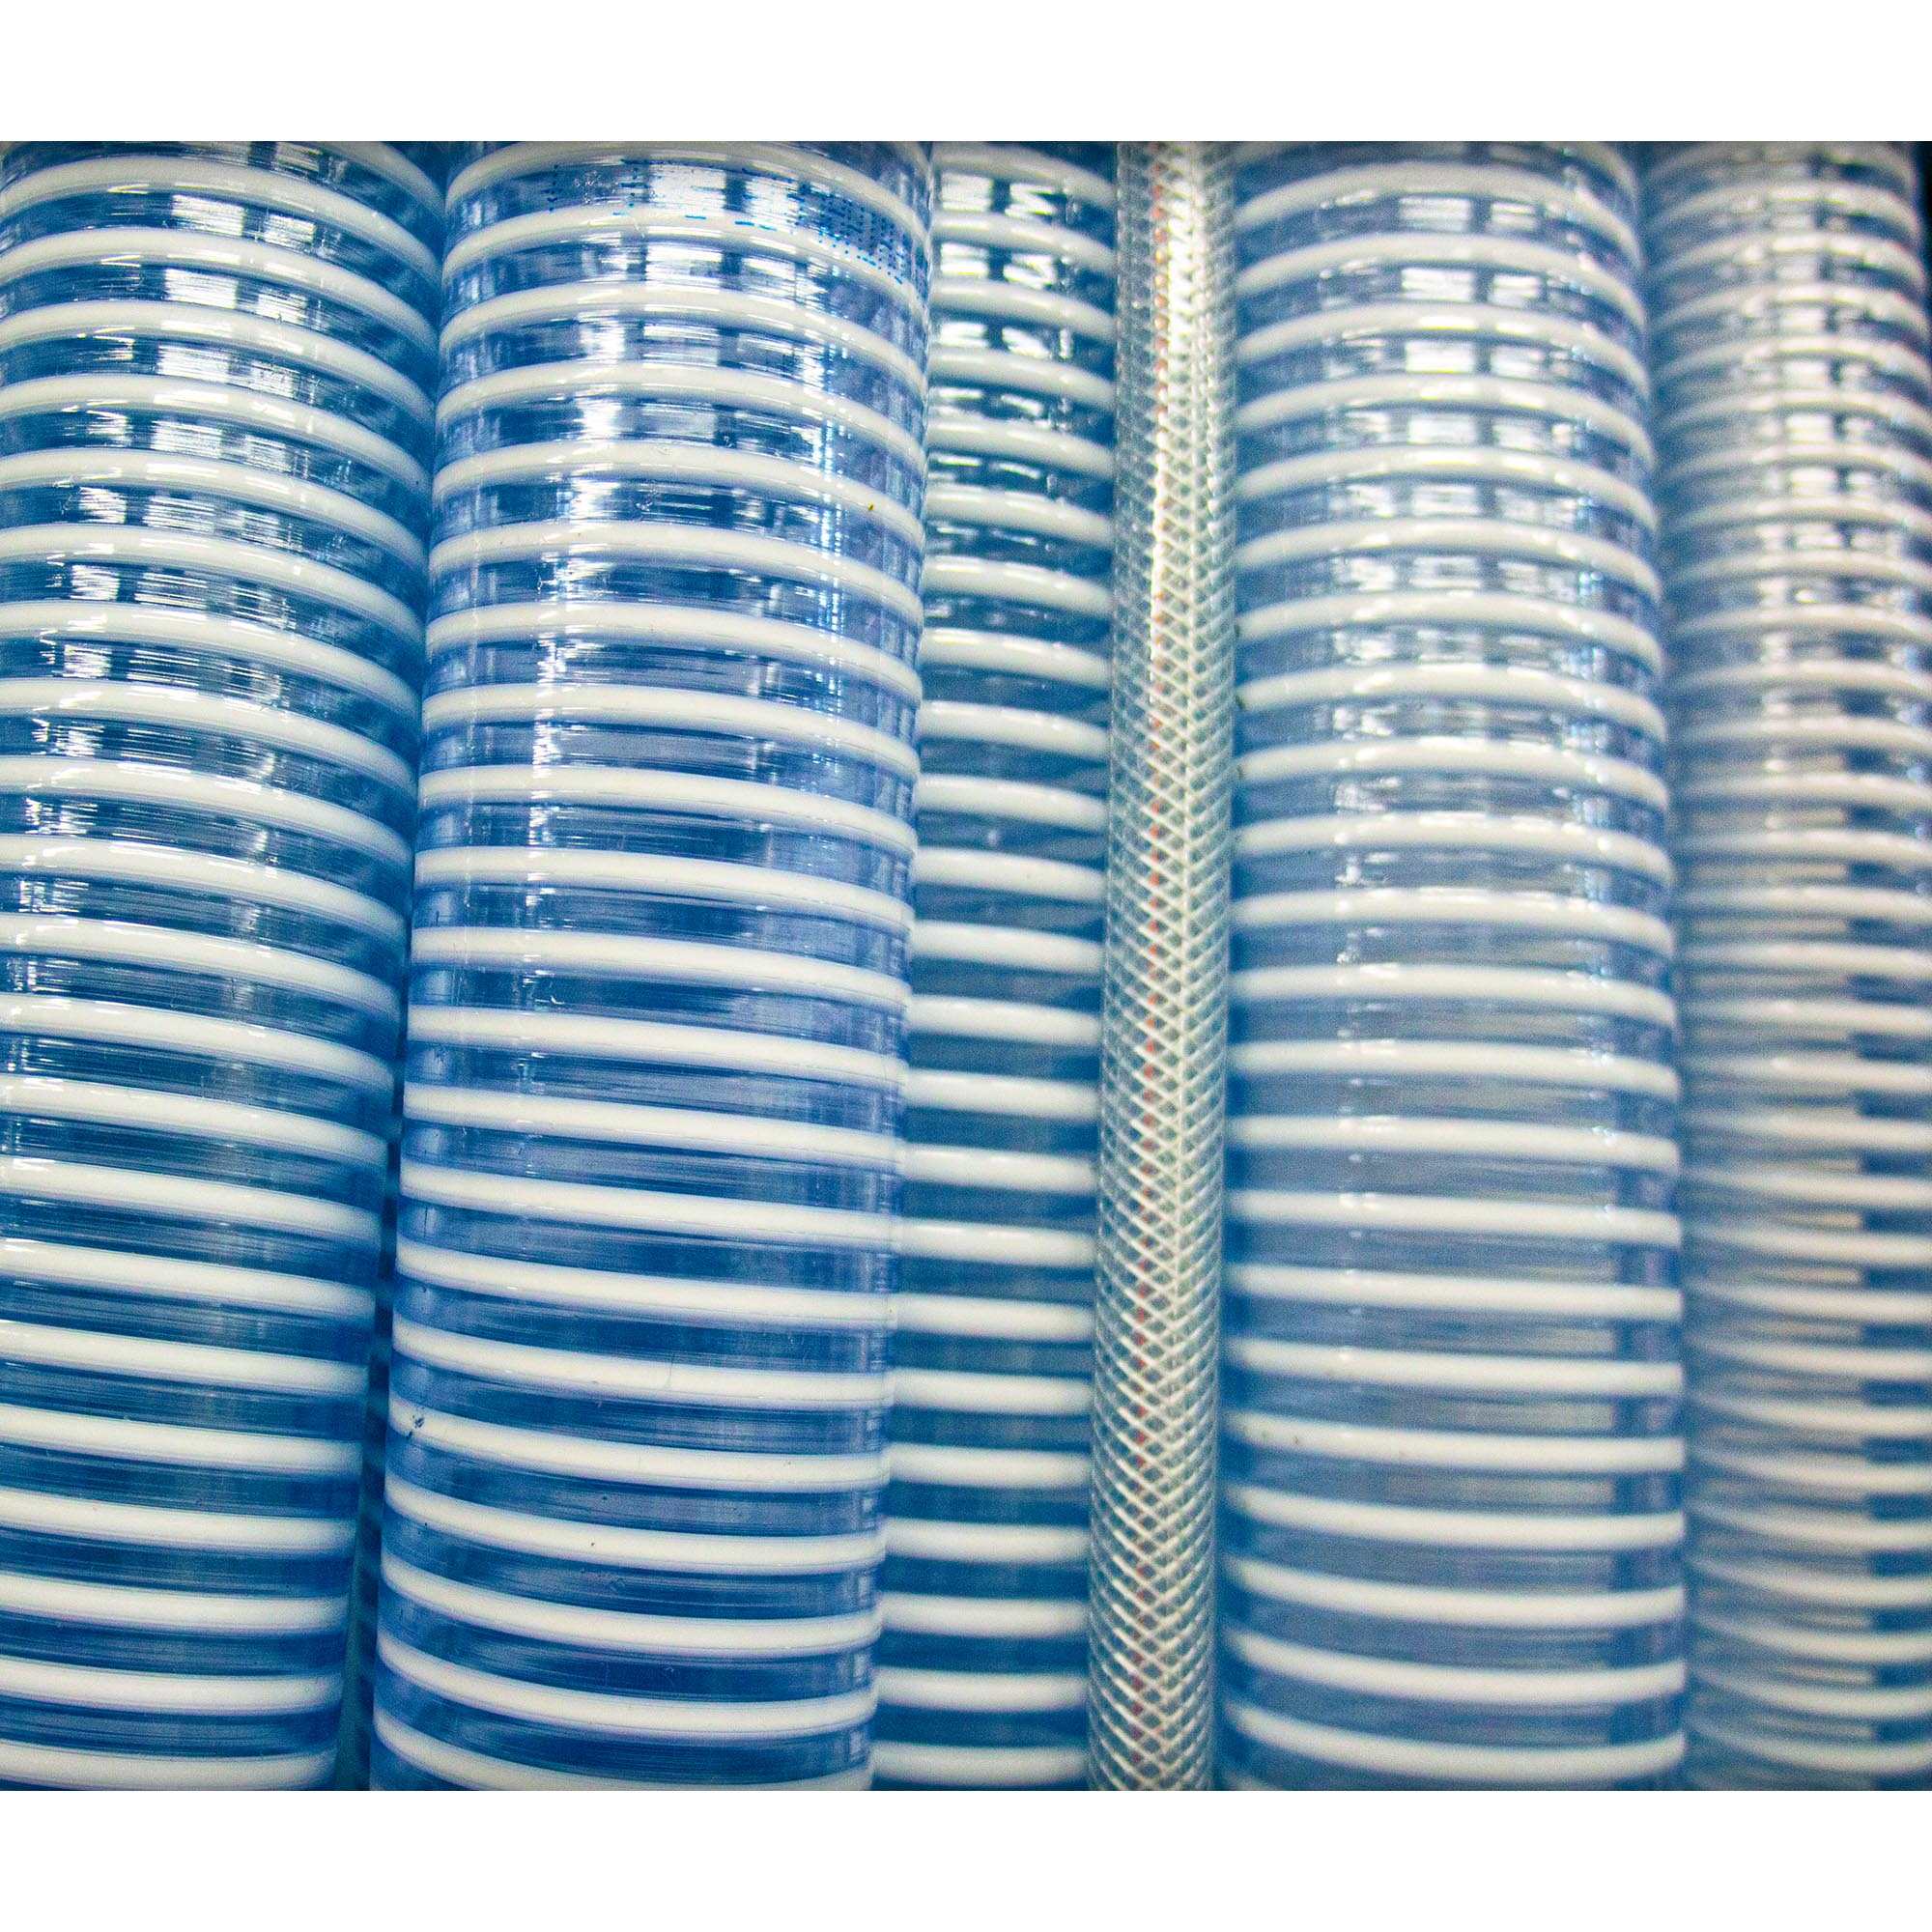 """EXAIR stocks 3/8"""", 1/2"""", 3/4"""", 1"""", 1-1/4"""", 1-1/2"""", 2"""", 2-1/2"""" and 3"""" I.D. PVC hose in lengths up to 50'."""